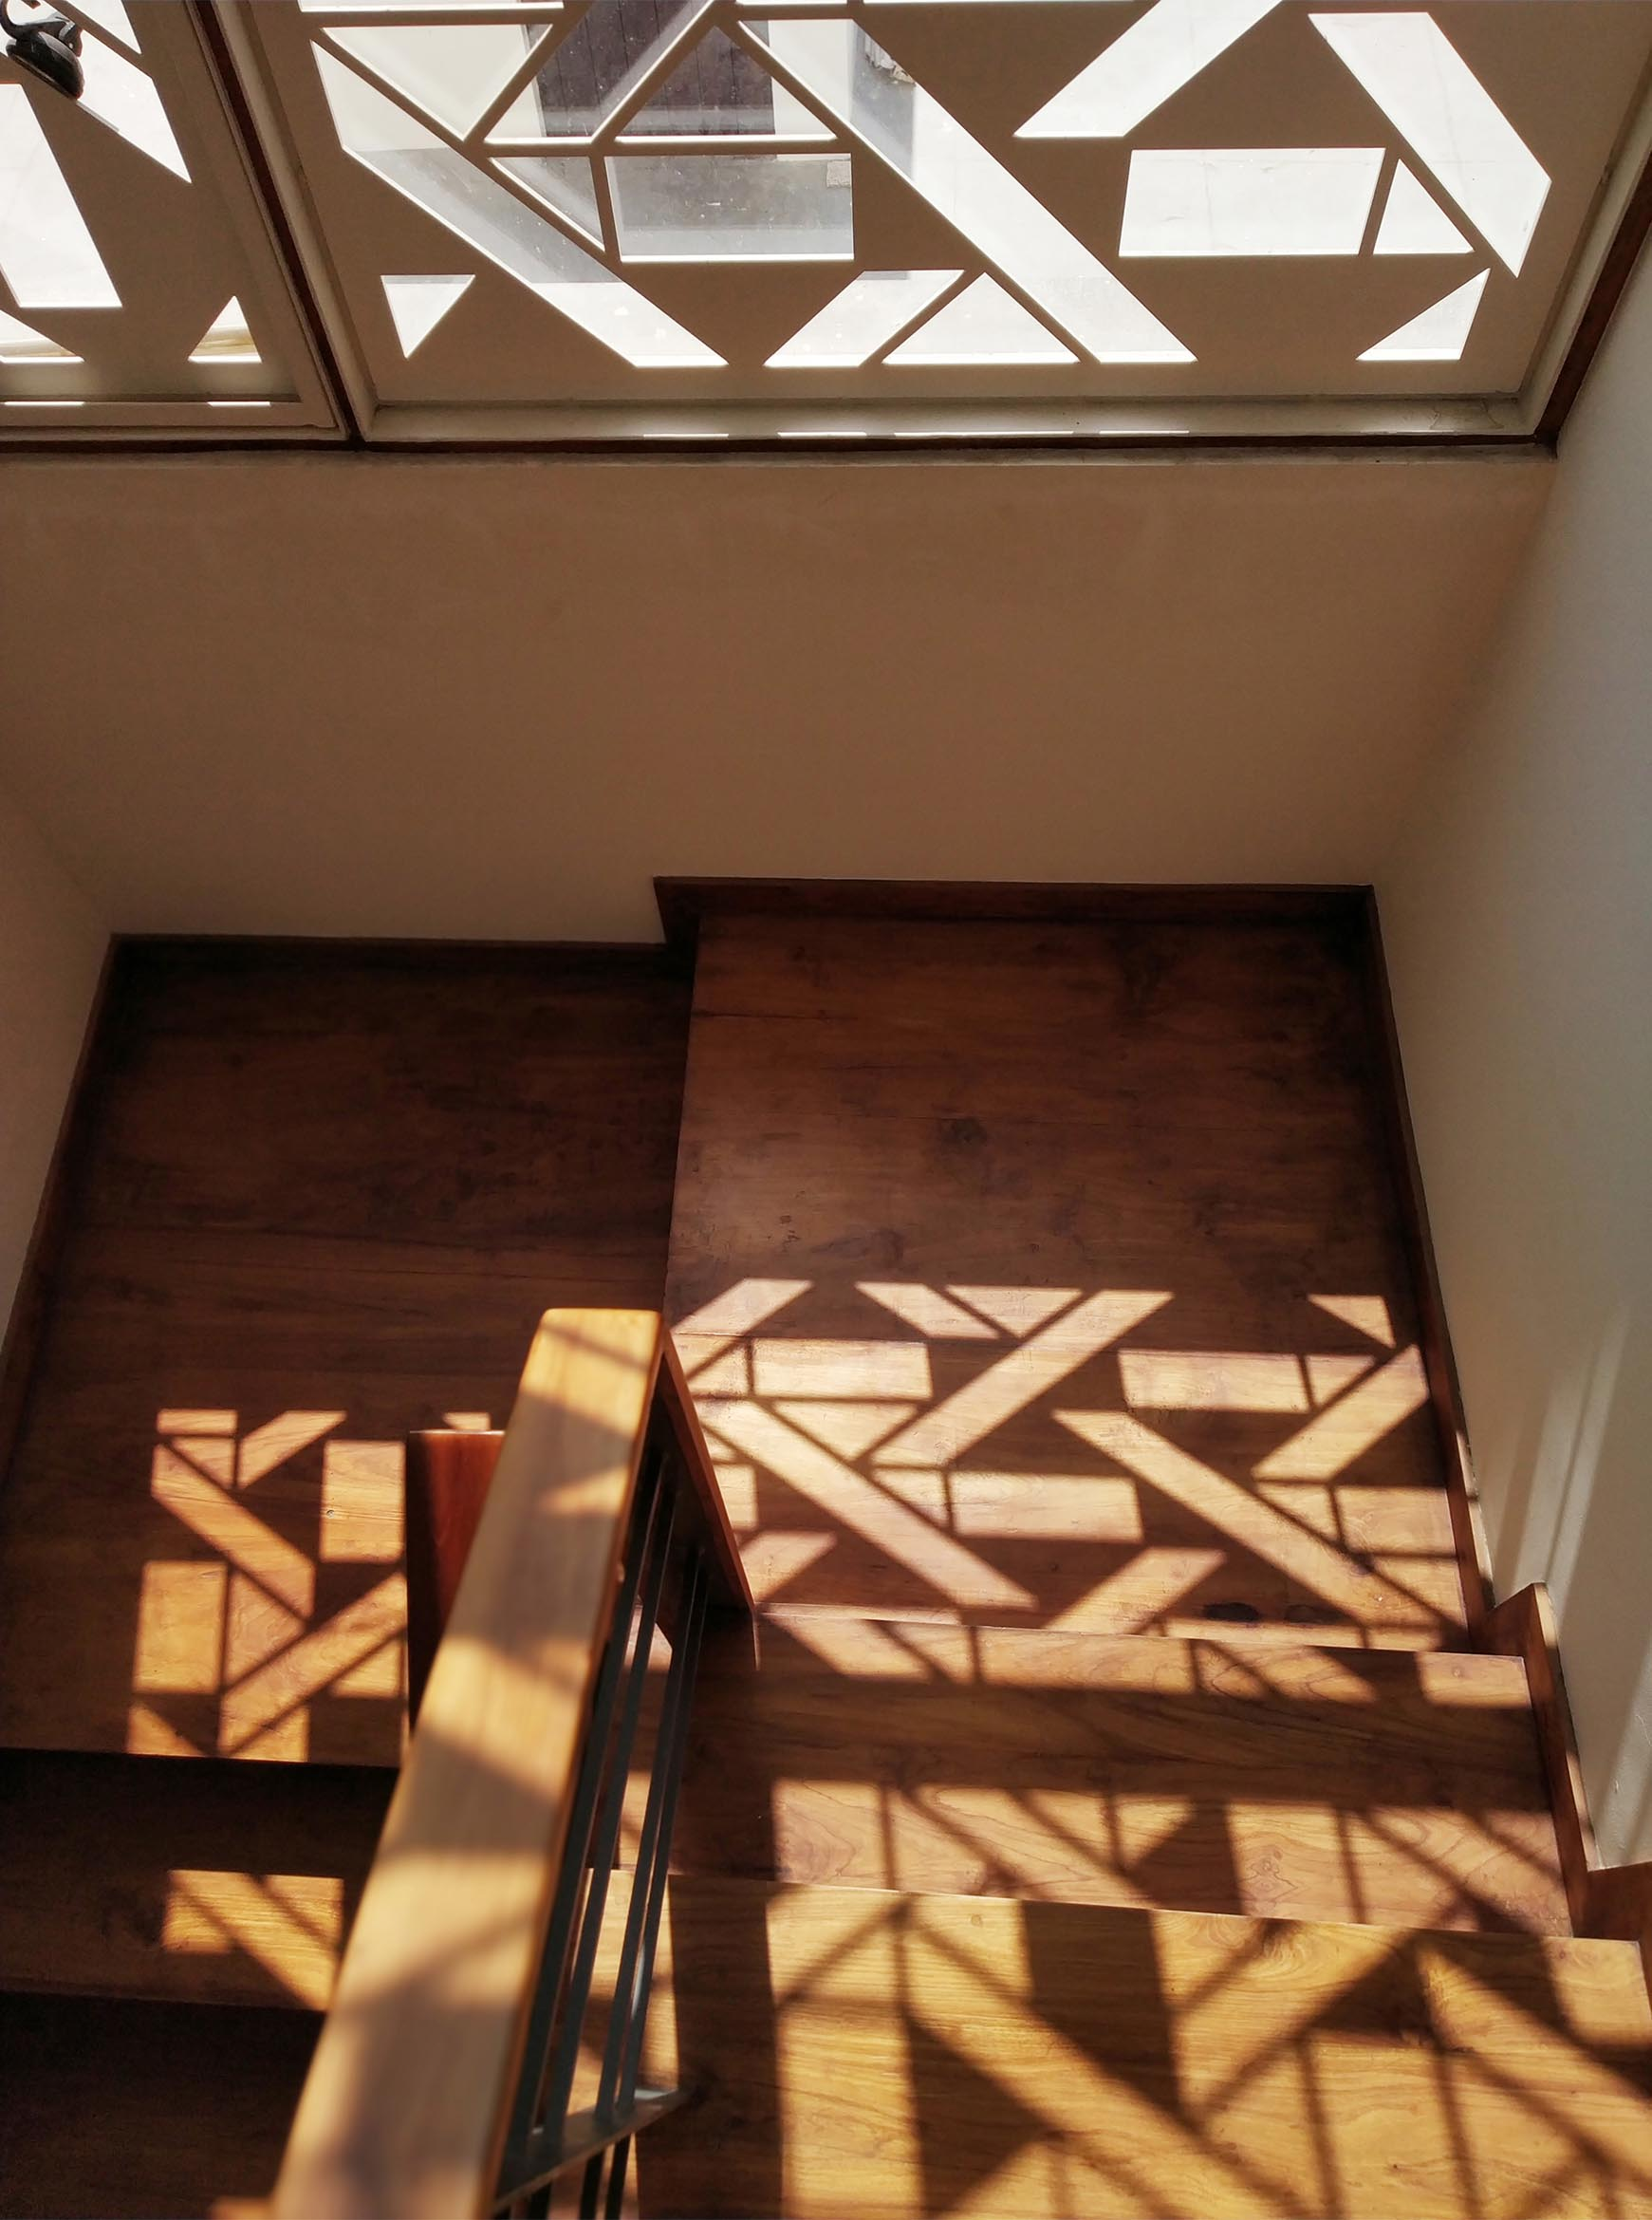 A white window screen with a geometric design casts interesting shadows on the walls and floor.